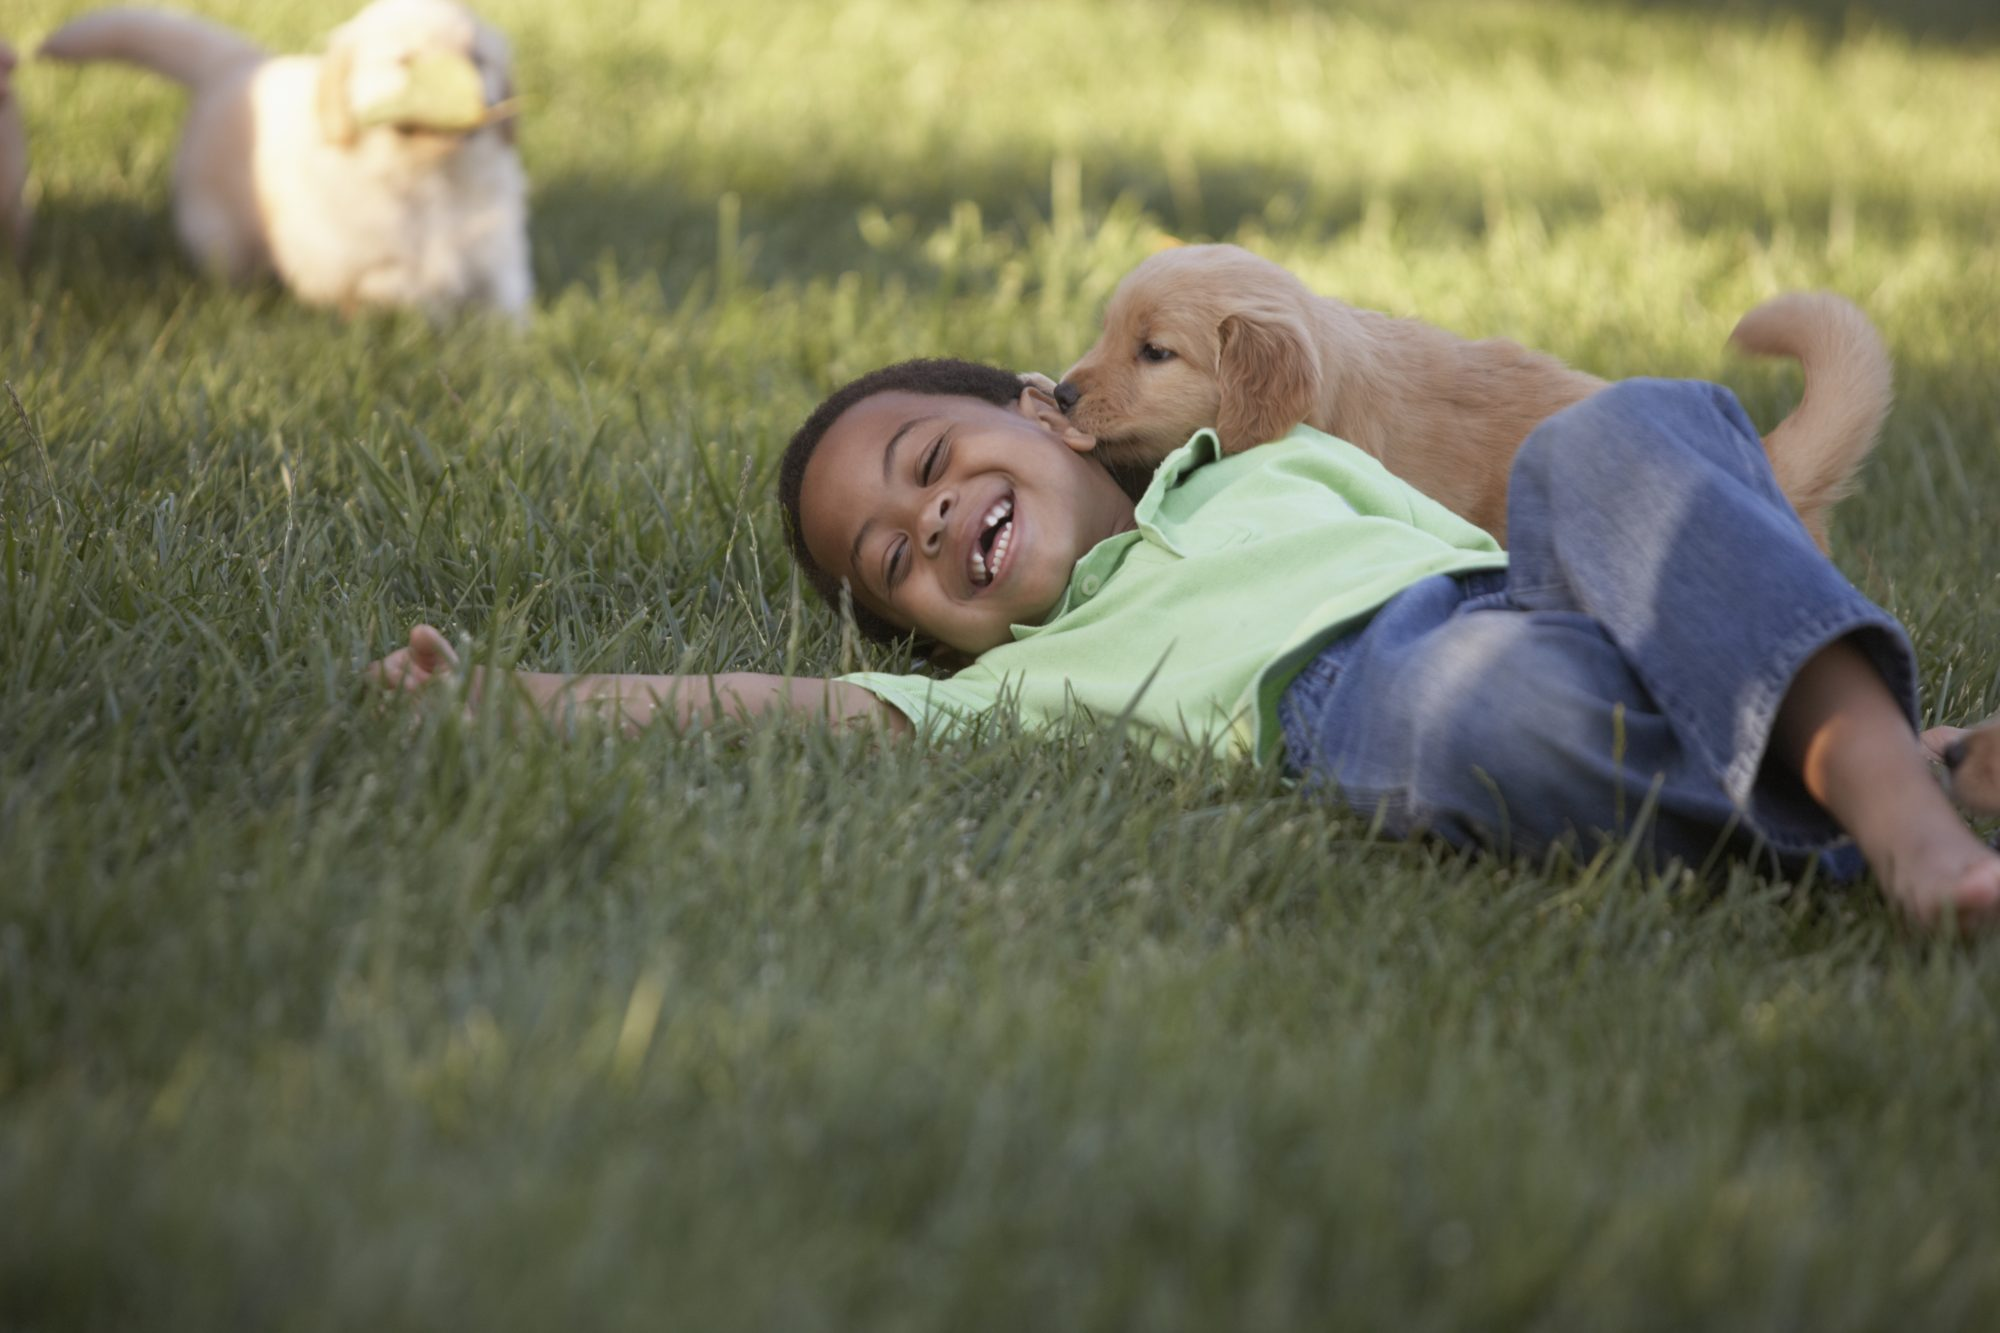 boy playing with puppies in grass